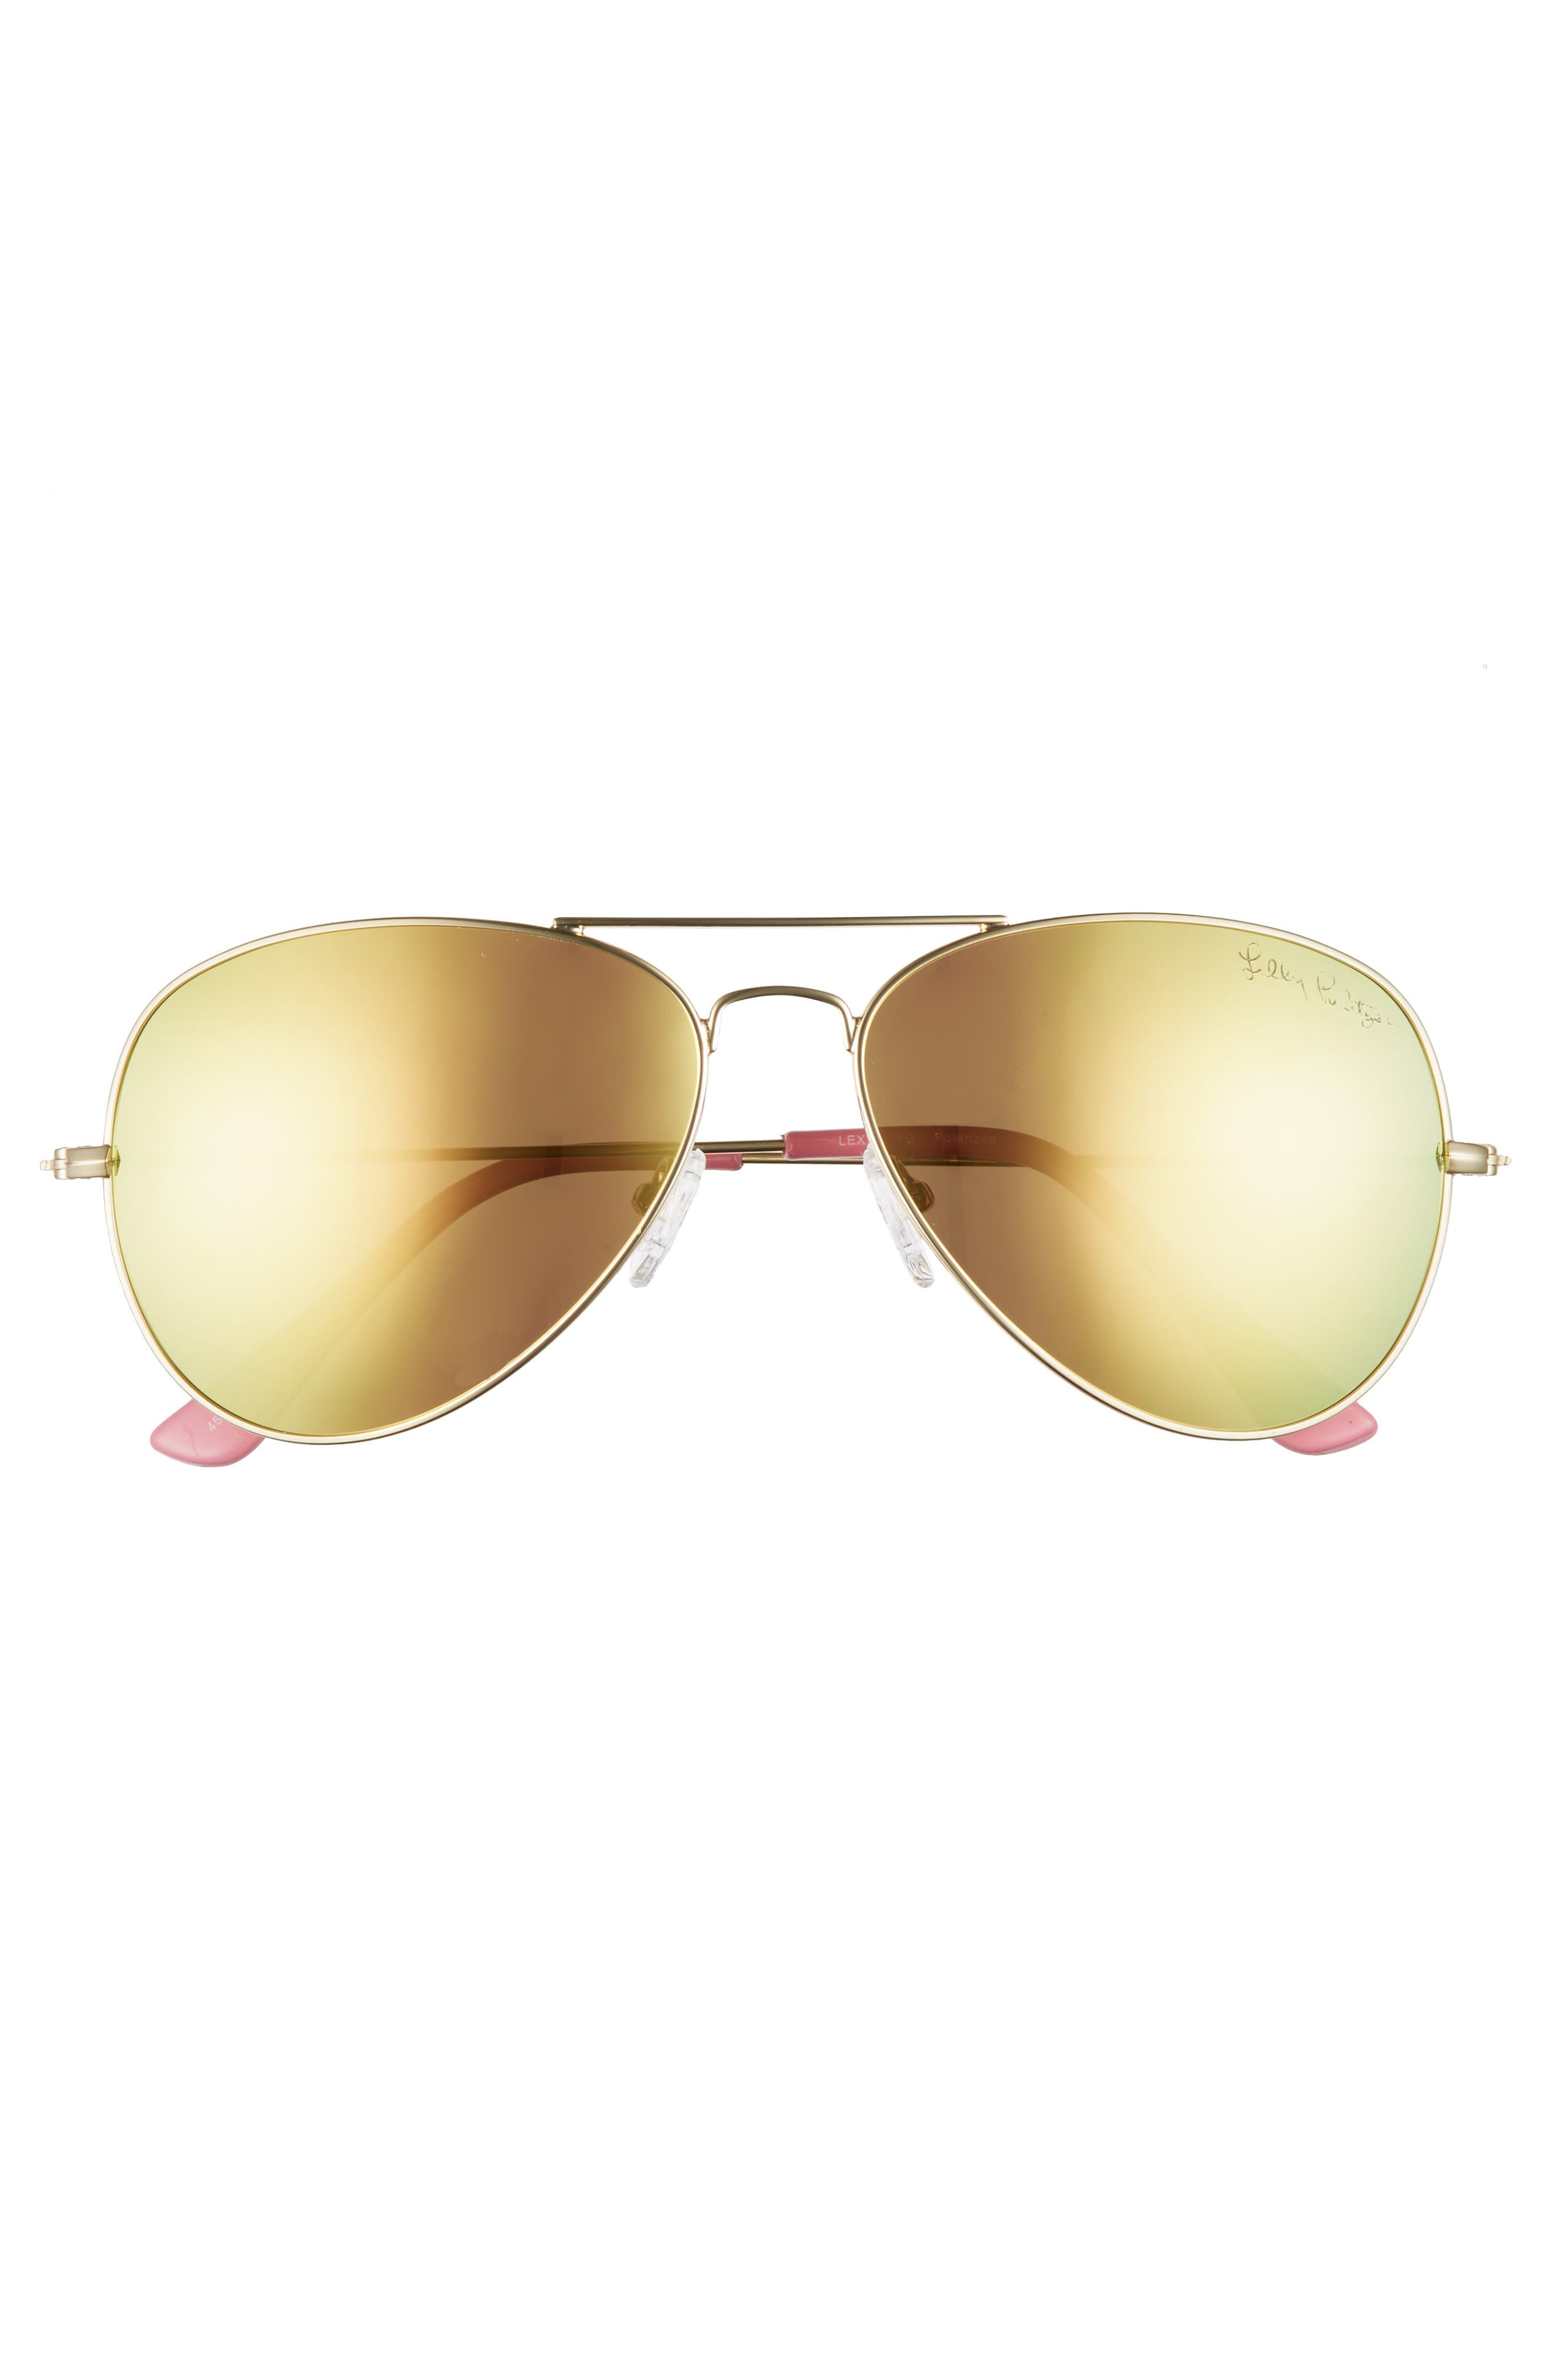 Lexy 59mm Polarized Aviator Sunglasses,                             Alternate thumbnail 3, color,                             Pink